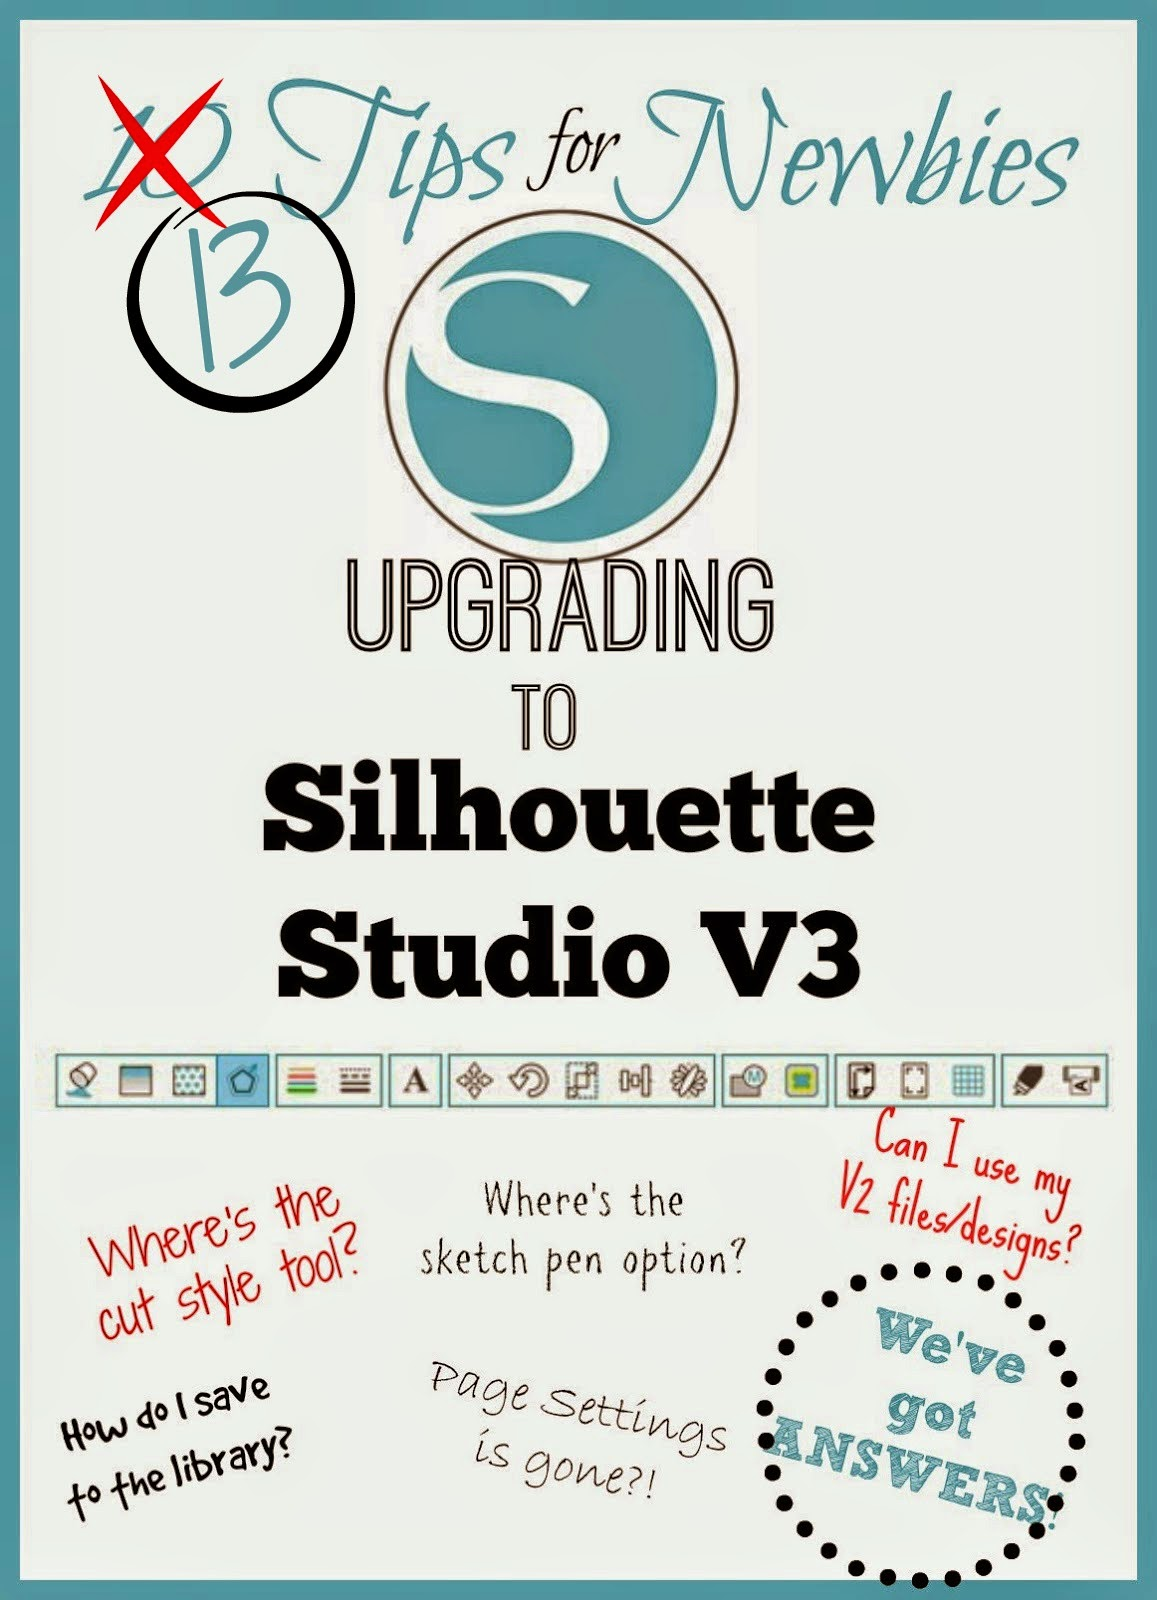 Silhouette Studio V3, update, tips